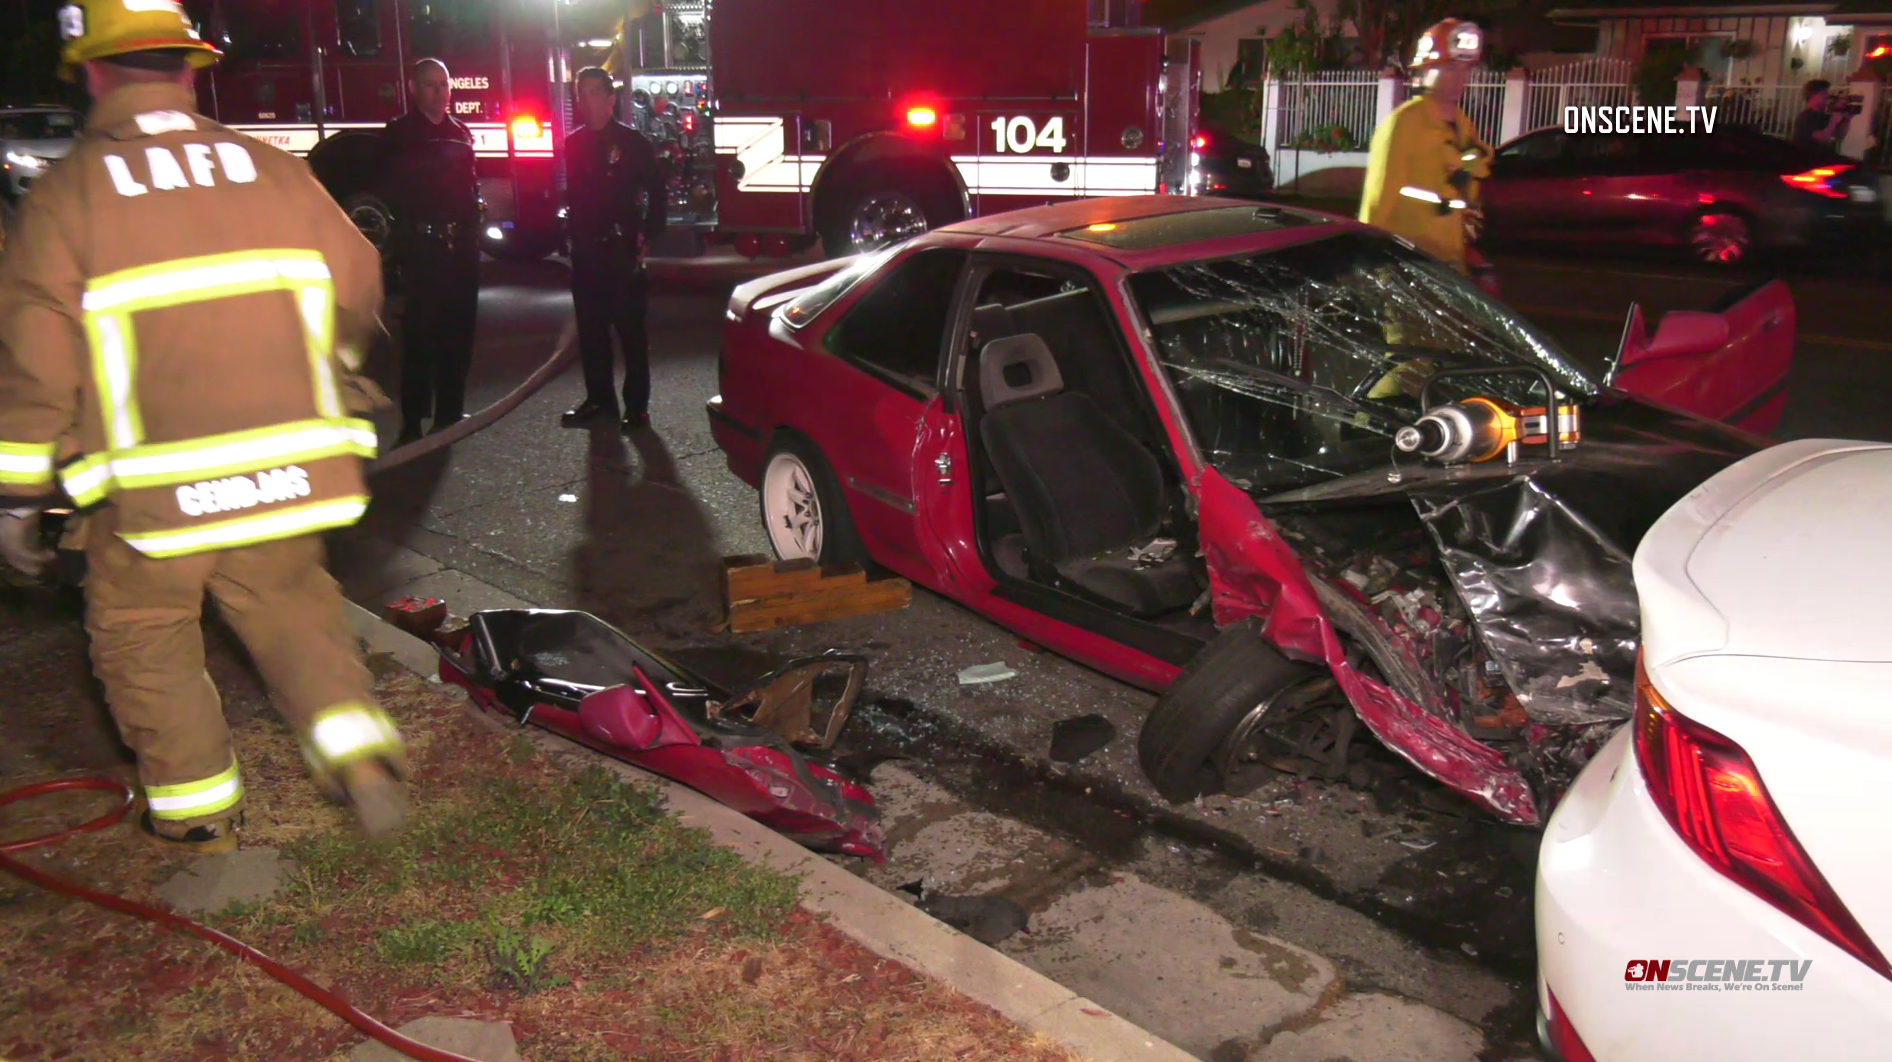 A vehicle involved in a suspected DUI crash in Northridge is seen on May 11, 2019. (Credit: ONSCENE.TV)